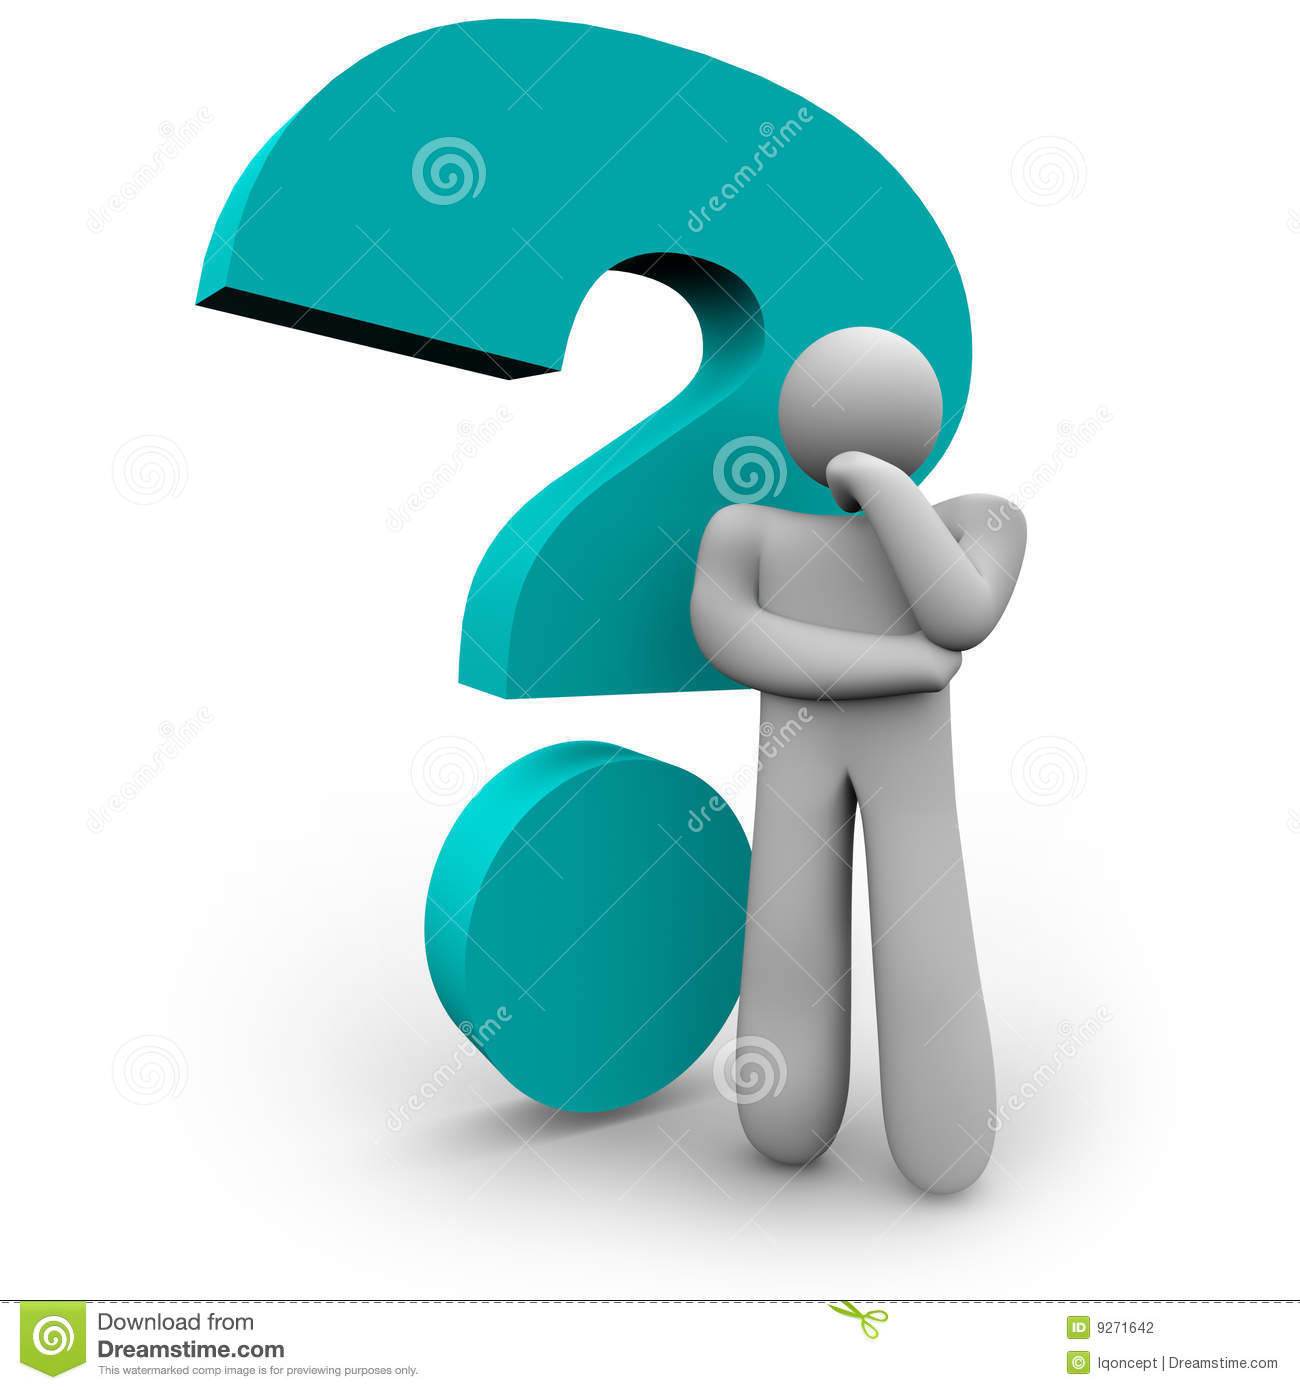 Pics photos clip art cartoon scientist with question mark stock - Question Mark And Thinker Stock Photography